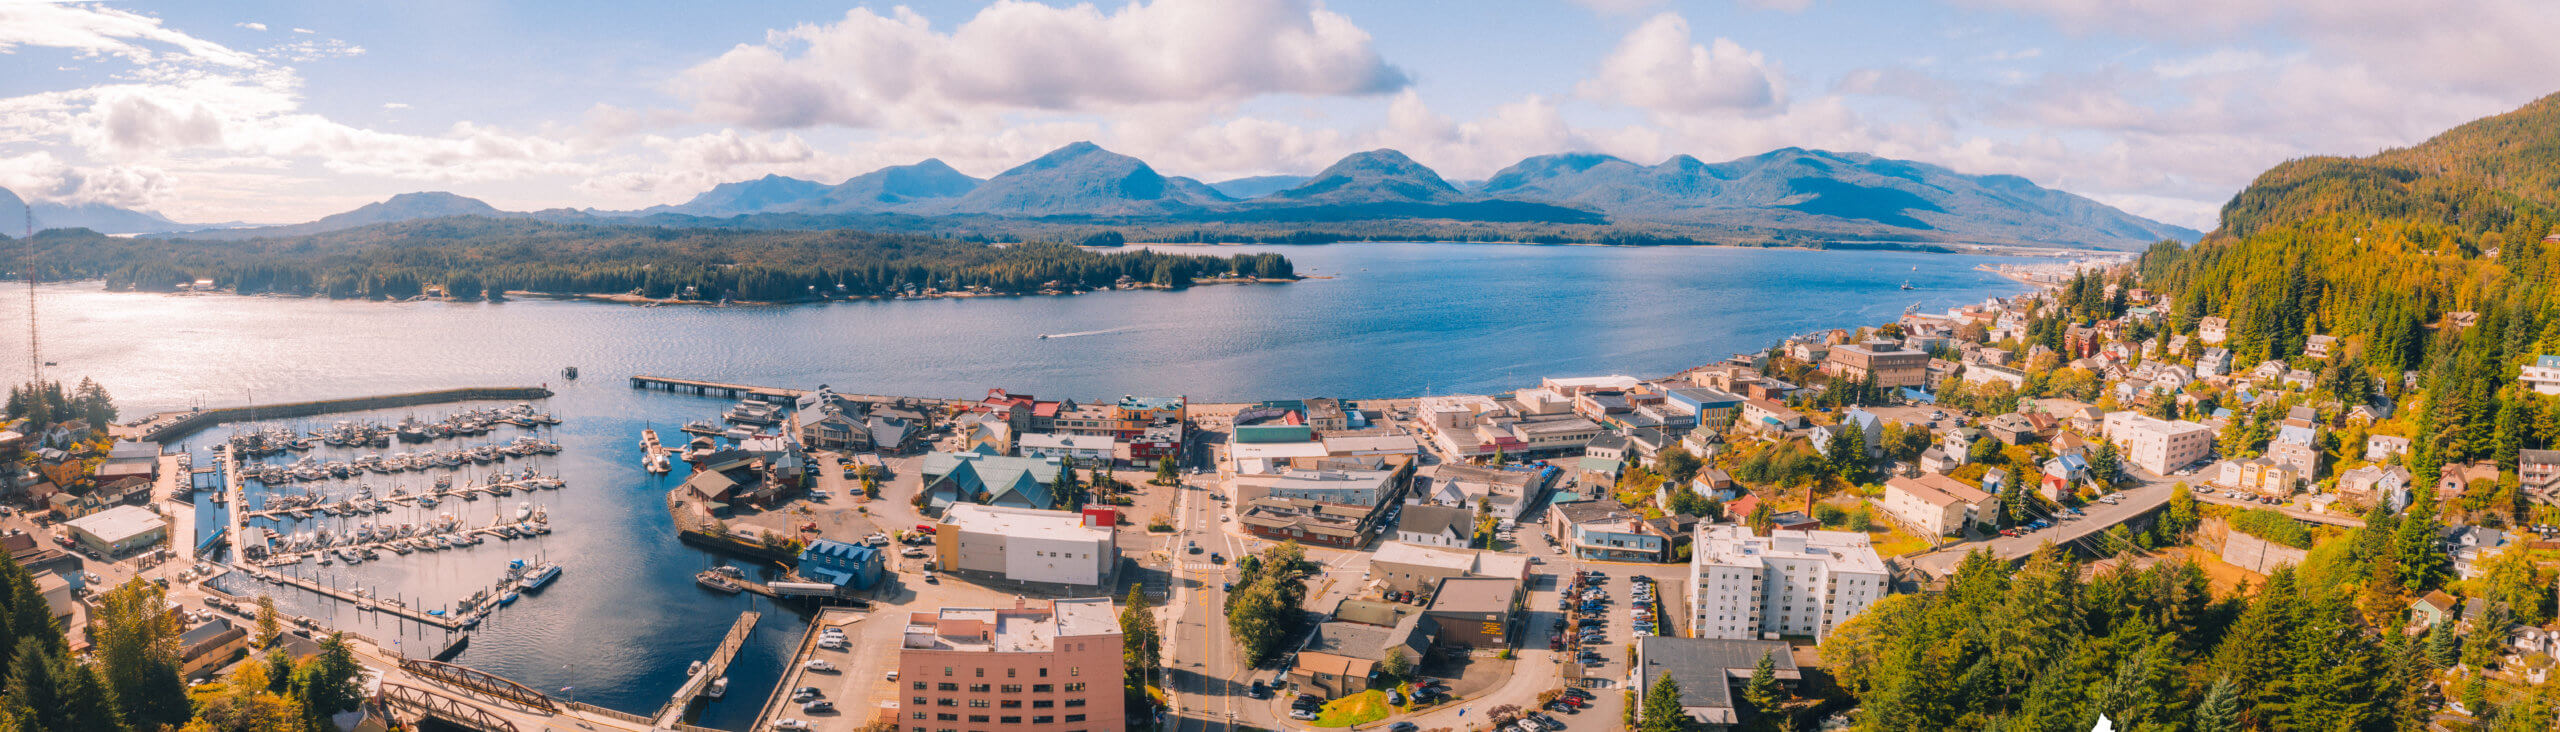 Ketchikan Panorama